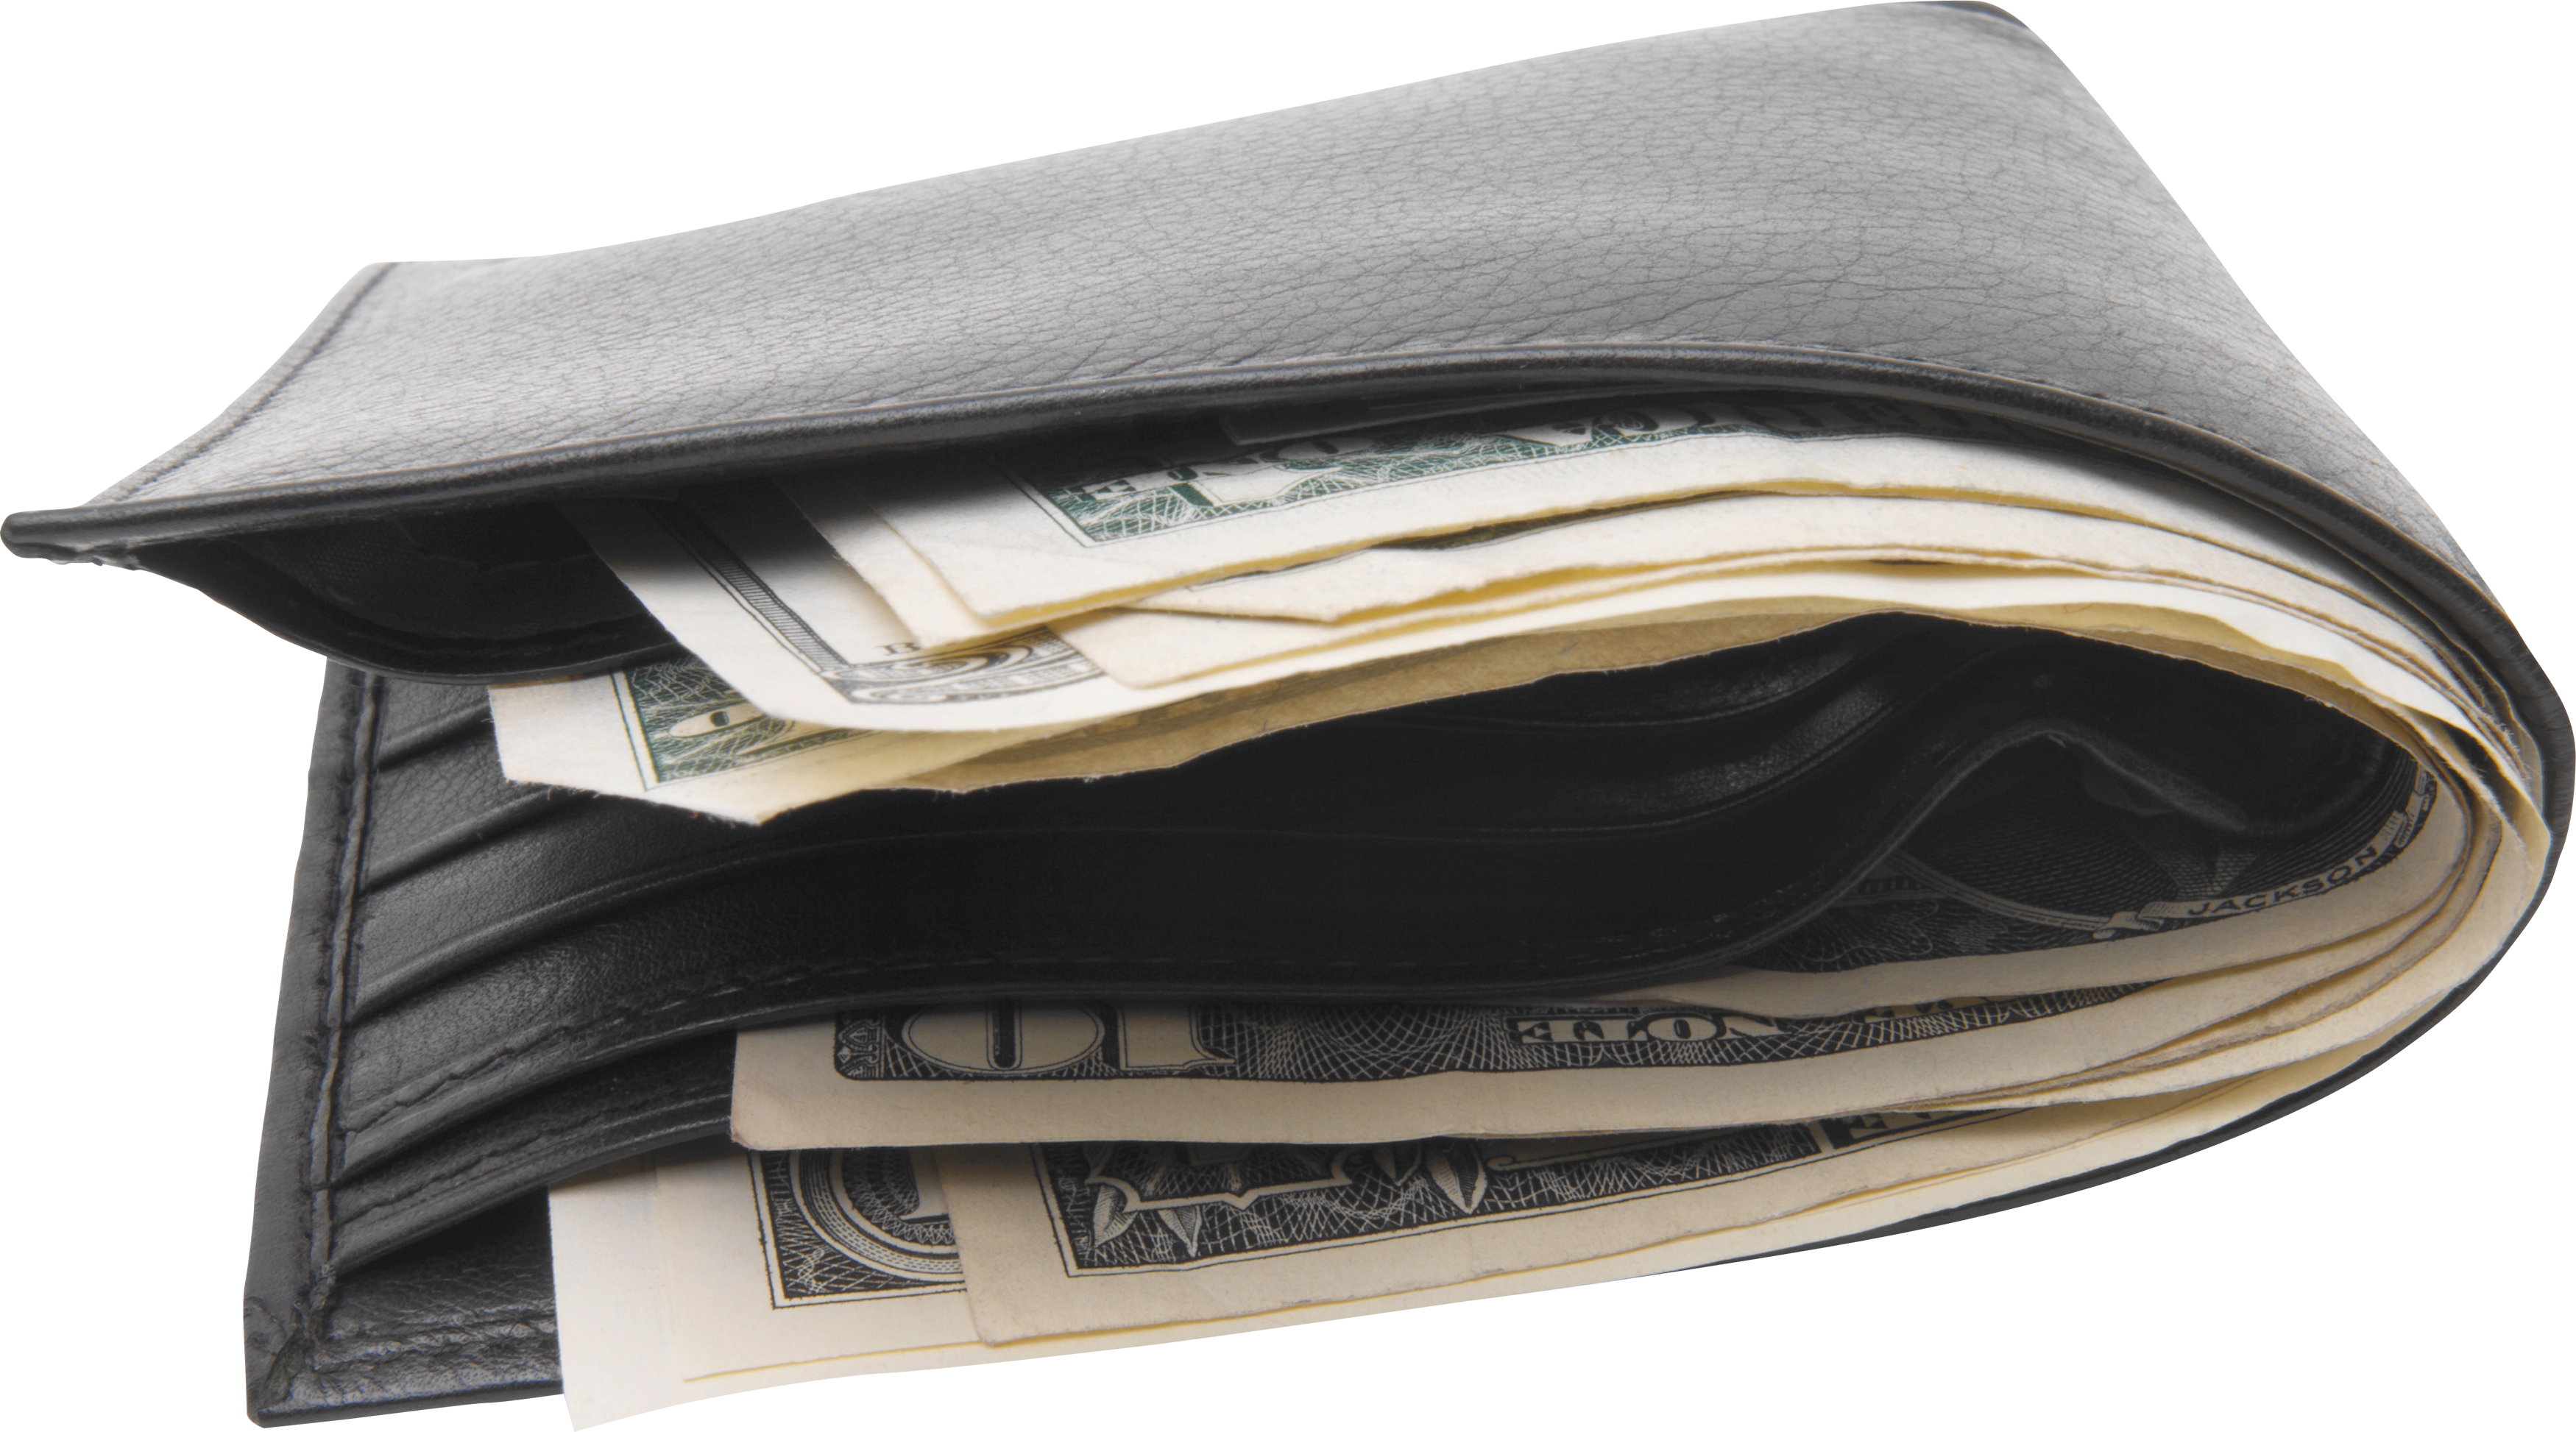 Cash wallet png. Black with money image